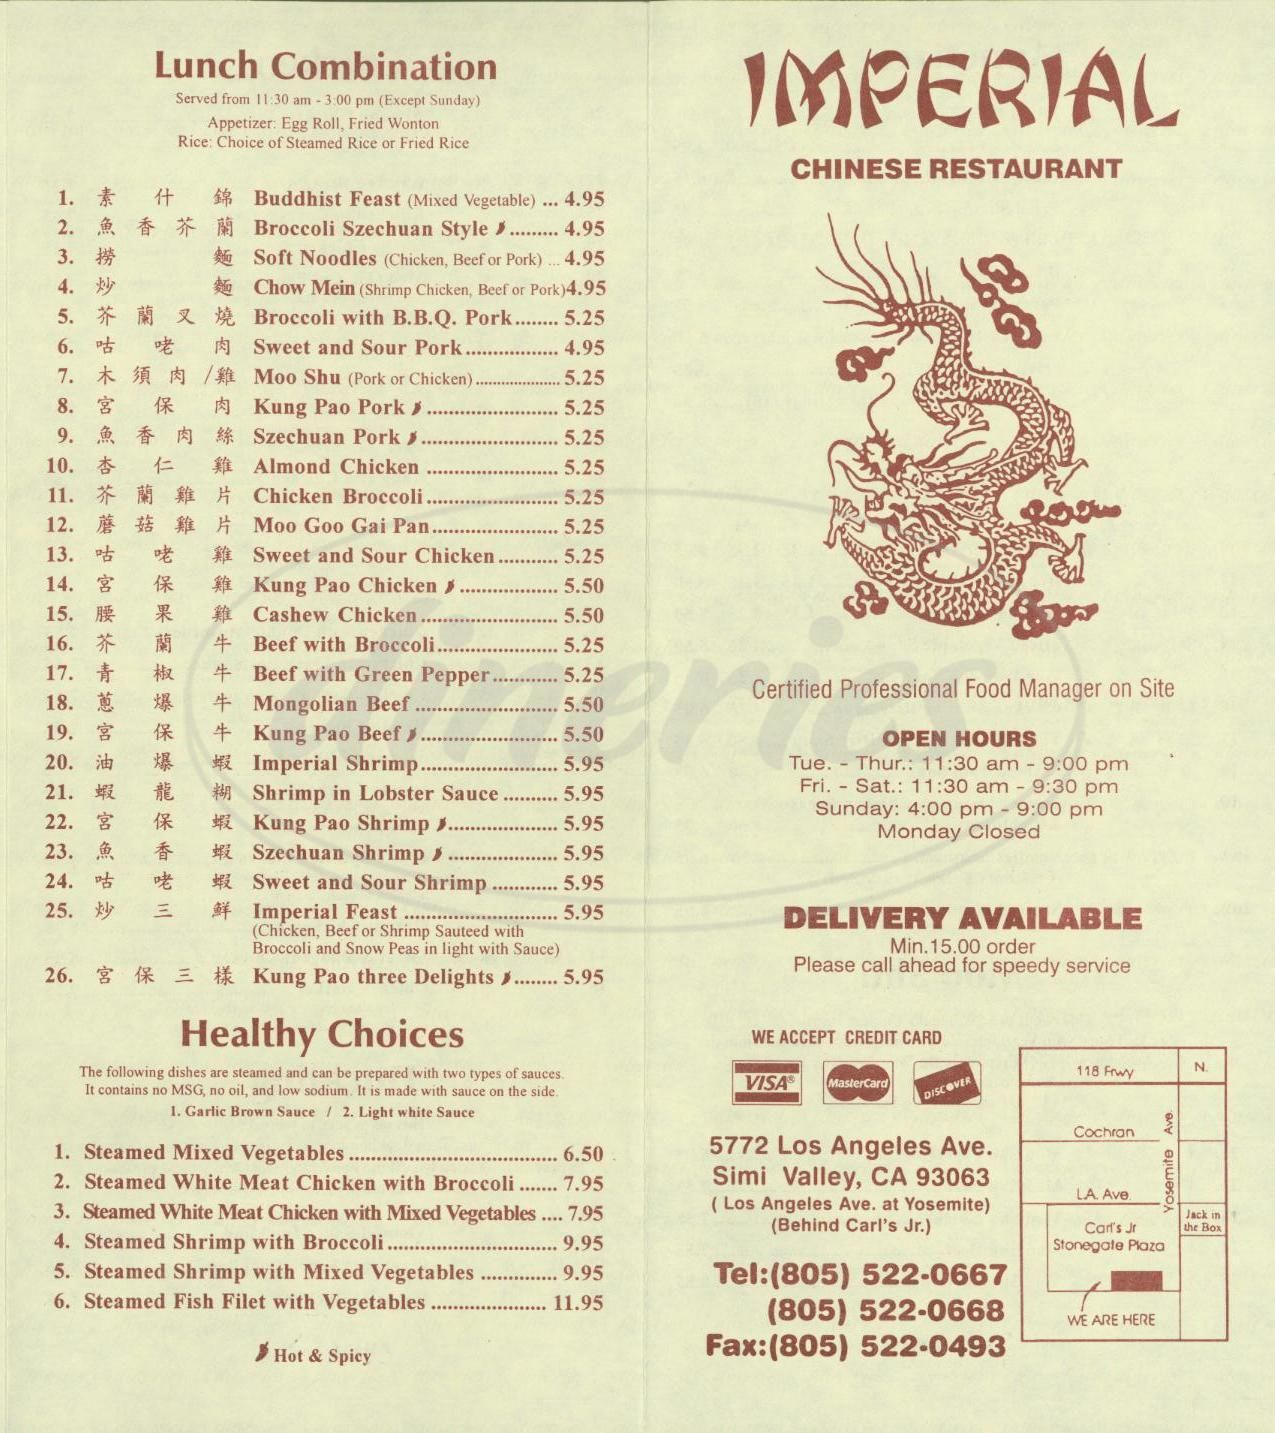 Menu For Imperial Chinese Restaurant Chinese Restaurant Chinese Menu Chinese Food Menu